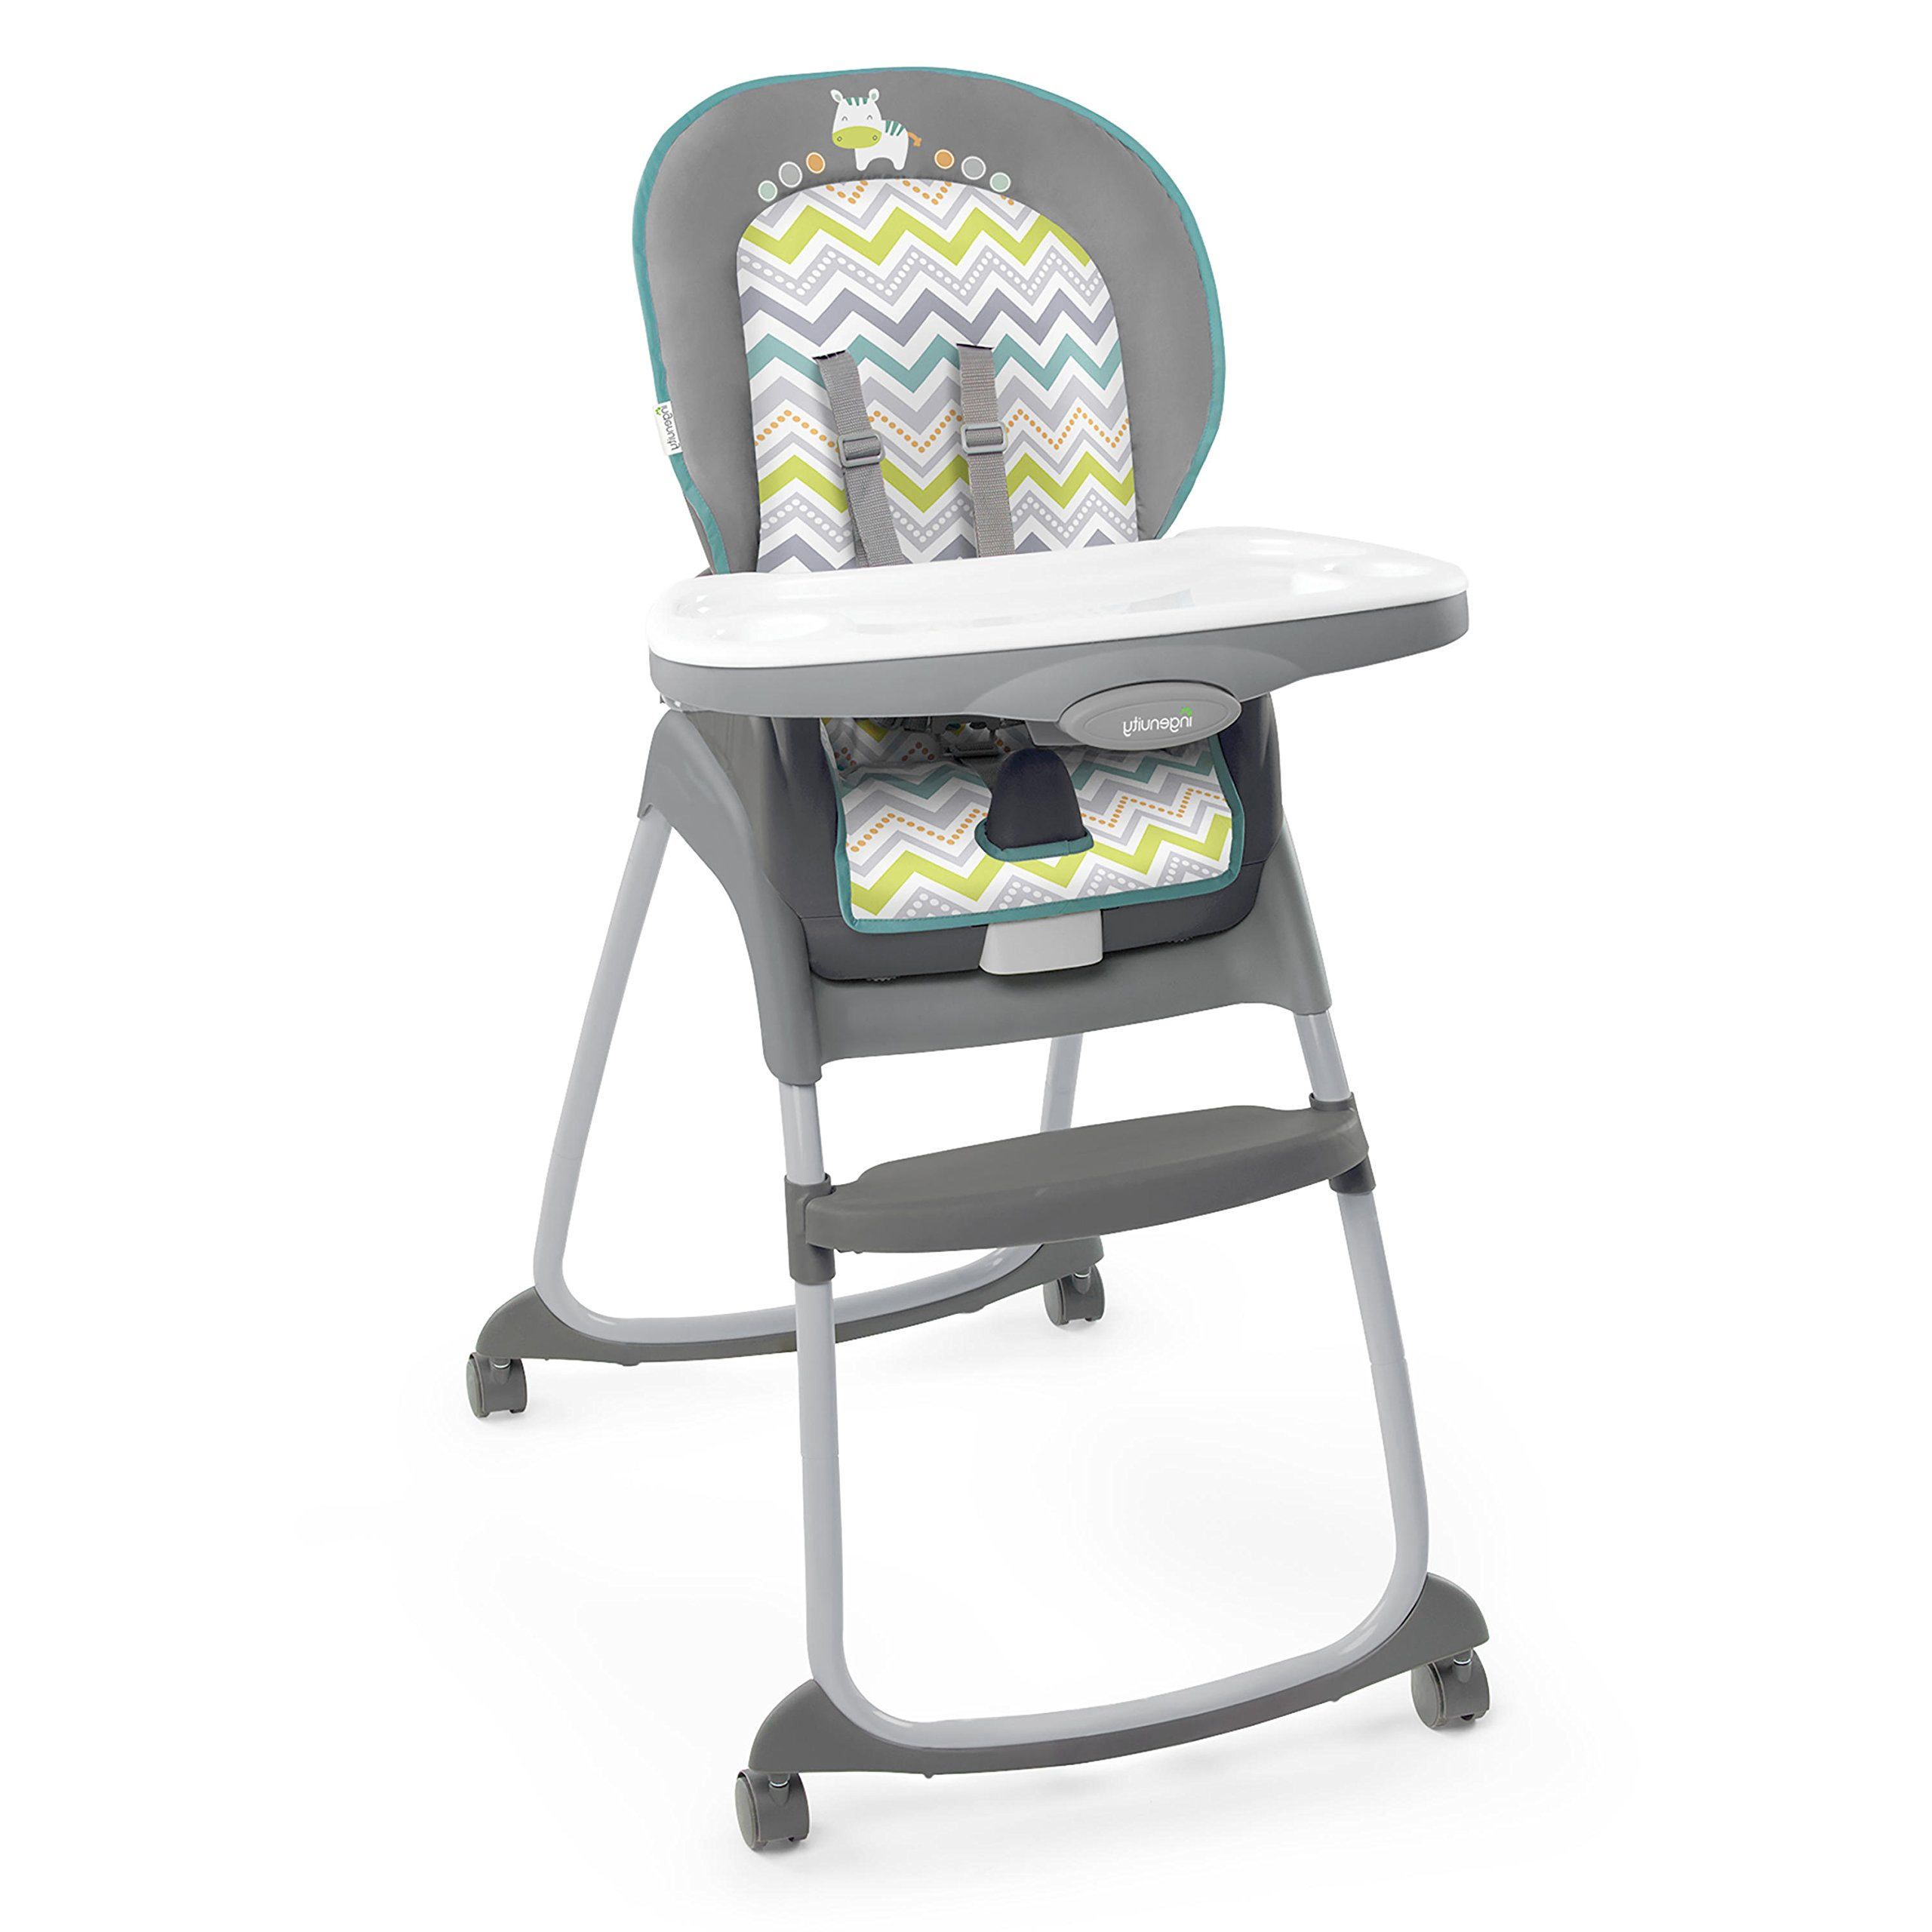 Ingenuity Trio 3-in-1 High Chair - Ridgedale - High Chair, Toddler Chair, and Booster by Ingenuity